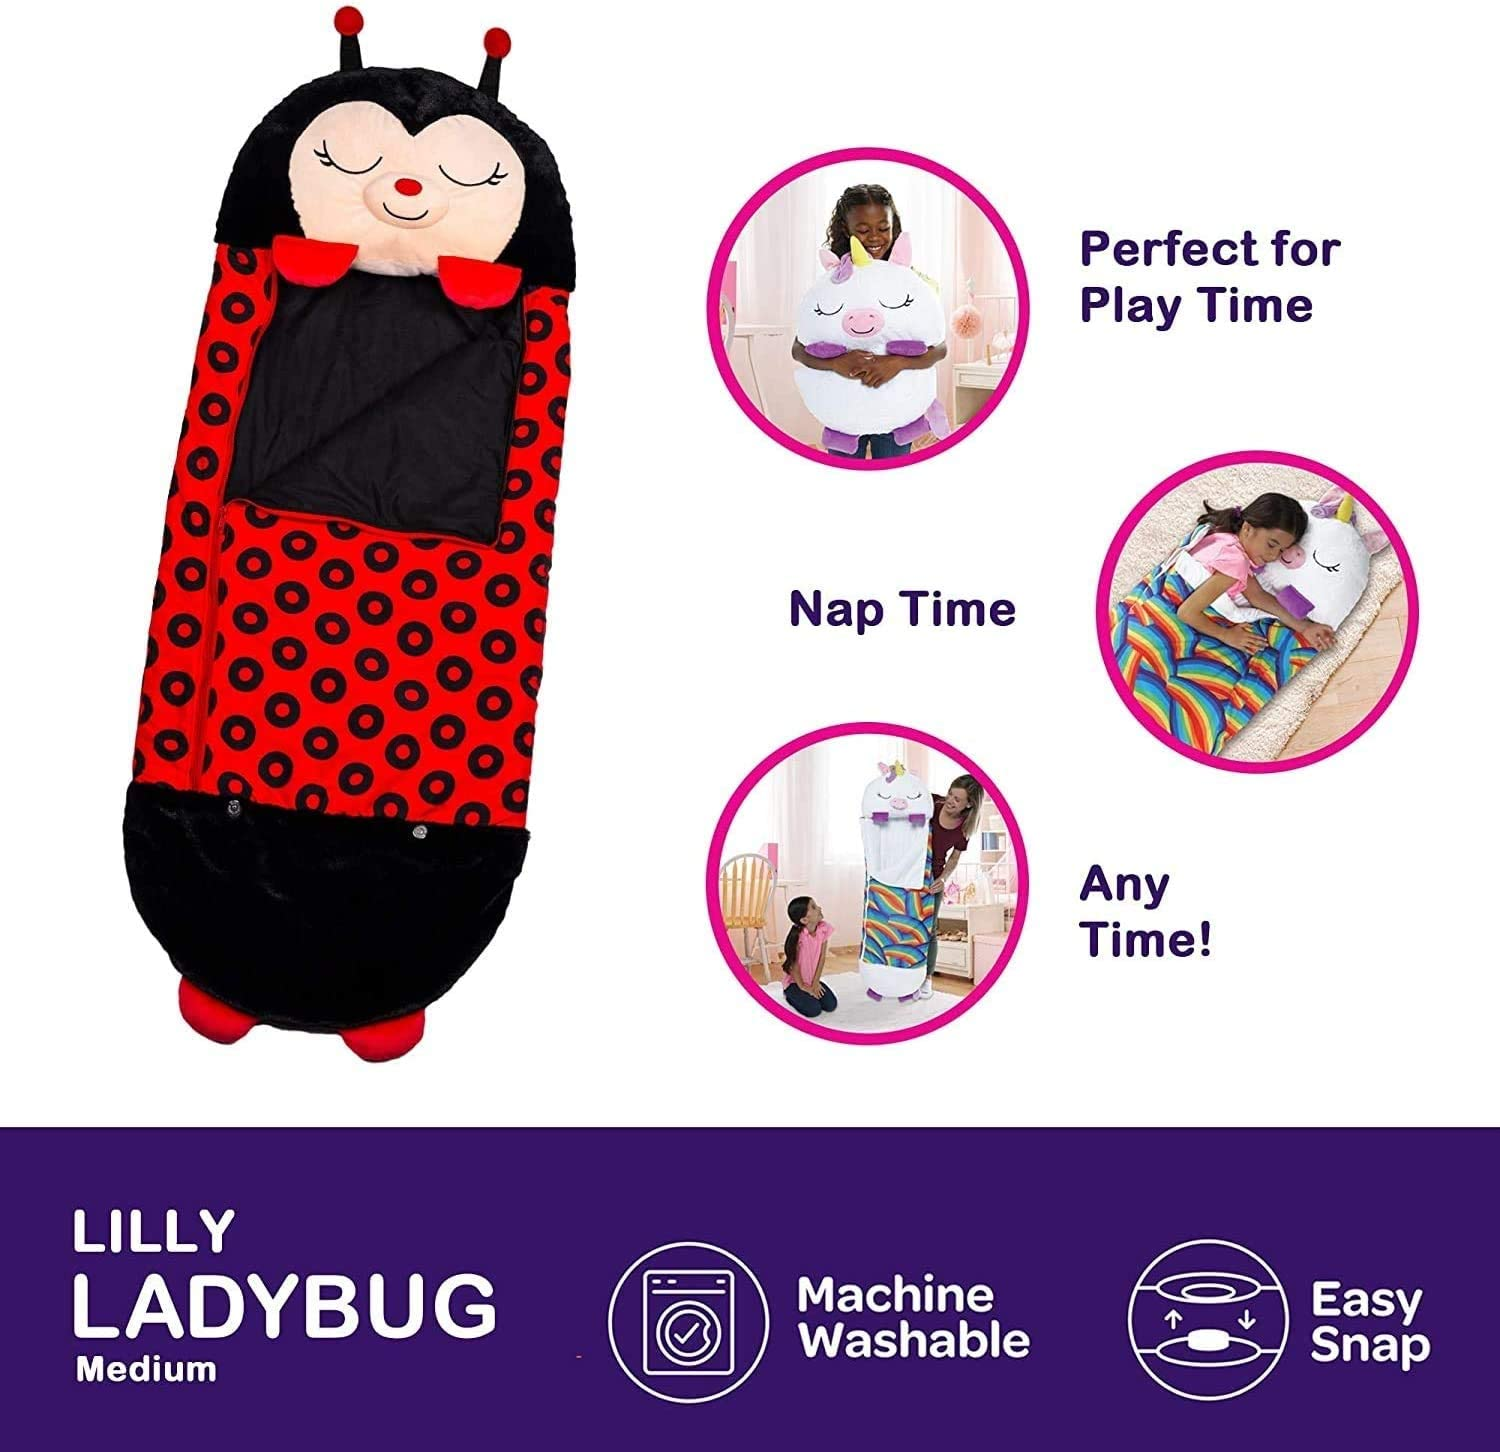 NUFR-Happy Kids Nappers Sleeping Bag,Portable Foldable Two-in-One Sleeping Bag with Pillow Lady Bug All Season Cartoon Animal Sleeping Bag Pillow,Soft and Warm,Suitable for Children Camping.